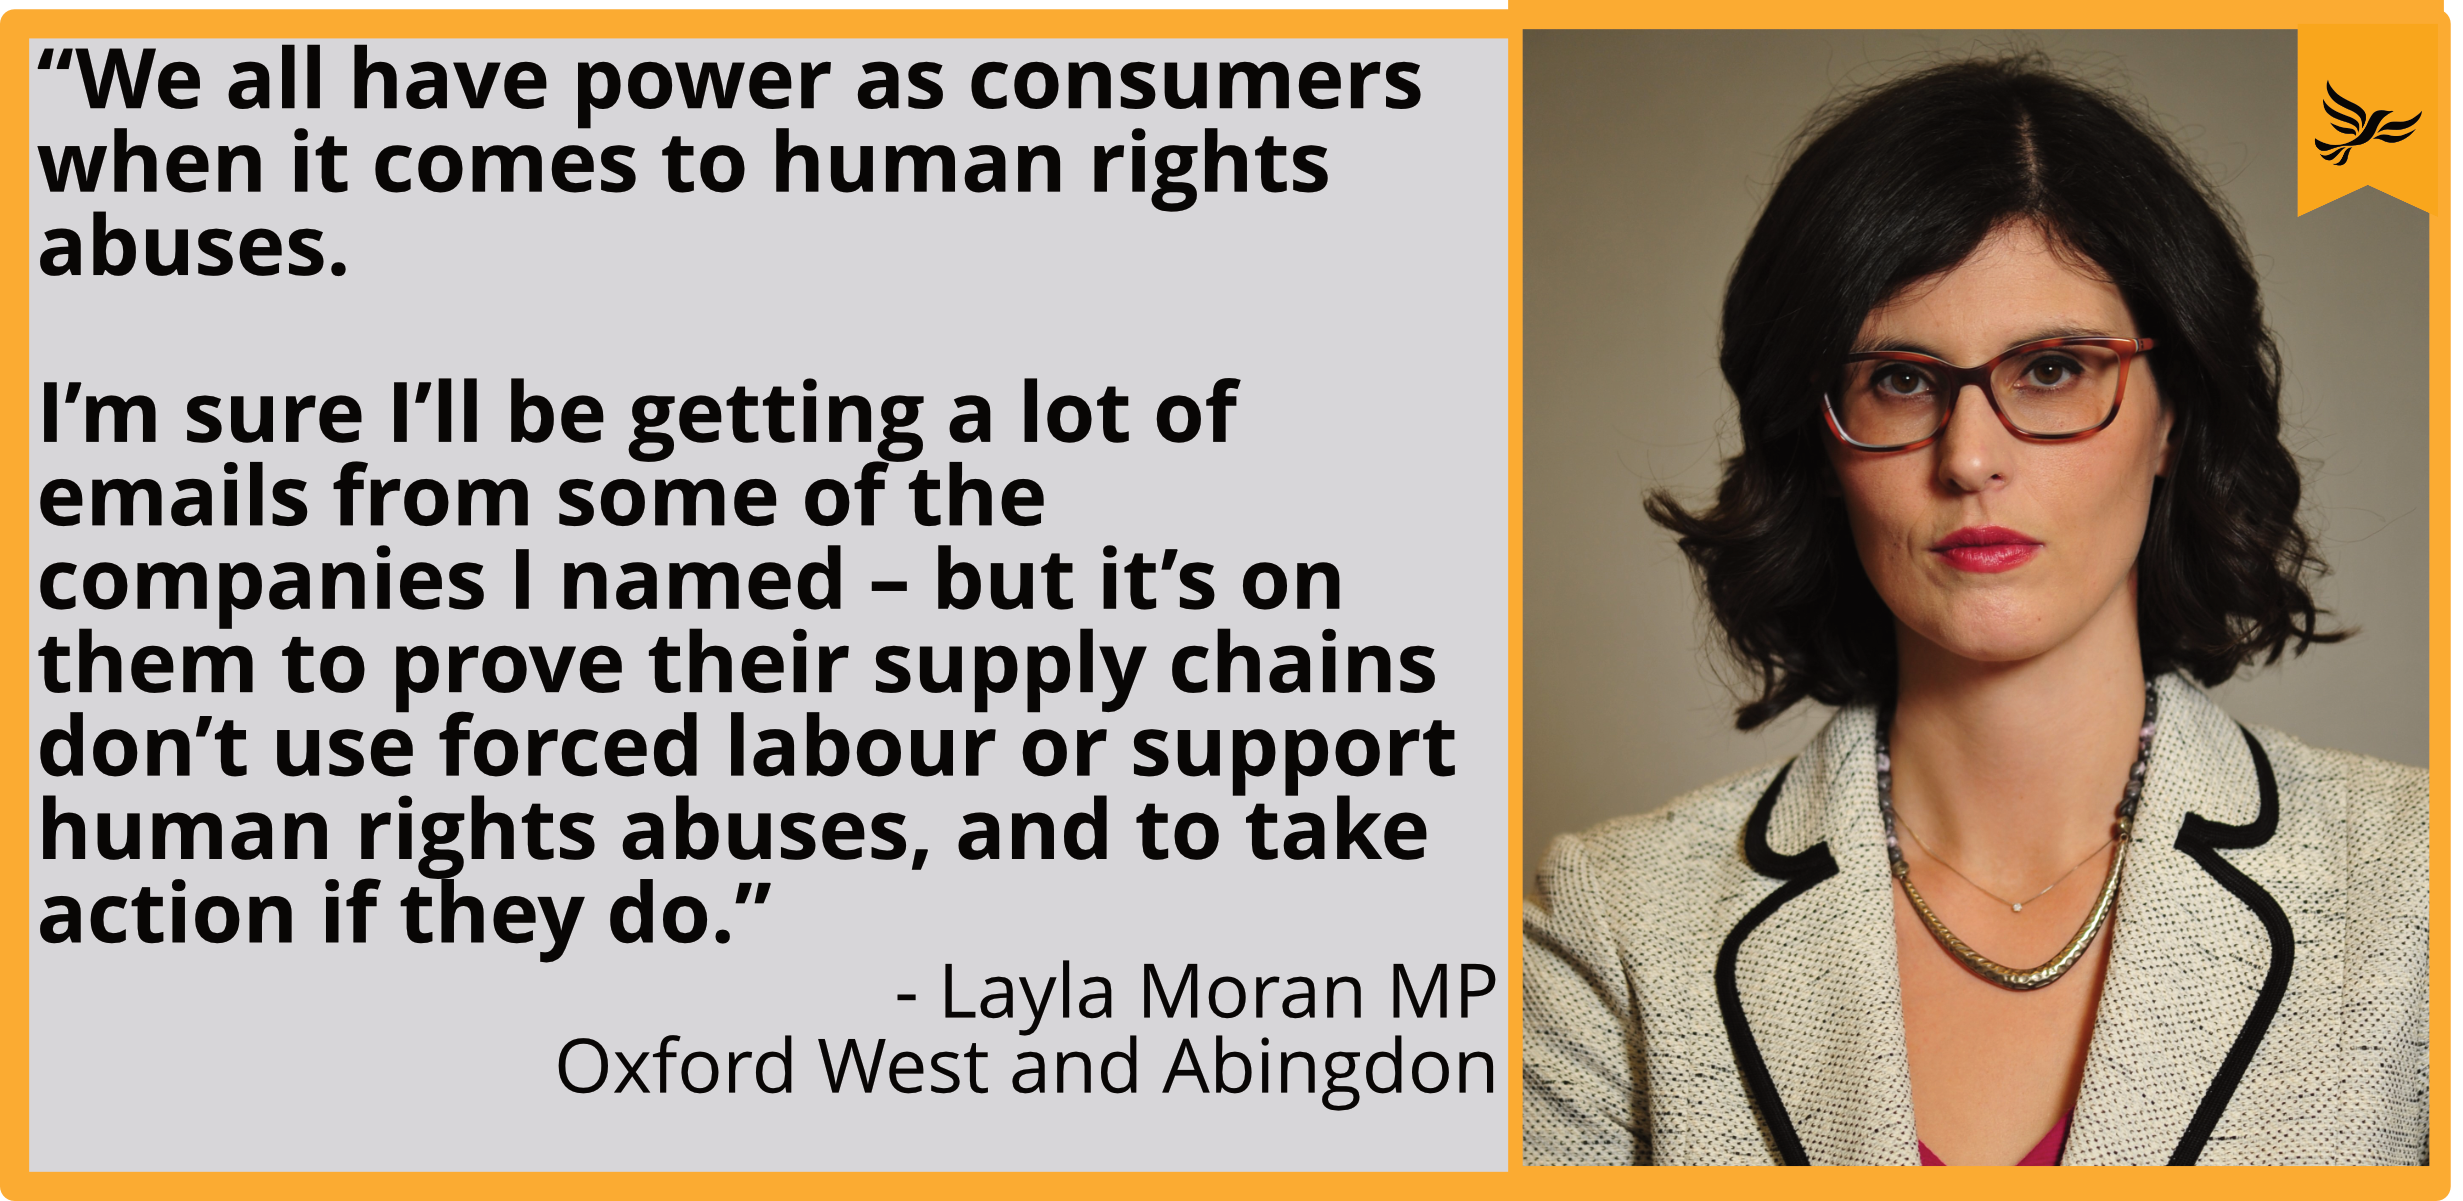 """We all have power as consumers when it comes to human rights abuses. I'm sure I'll be getting a lot of emails from some of the companies I named – but it's on them to prove their supply chains don't use forced labour or support human rights abuses, and to take action if they do."